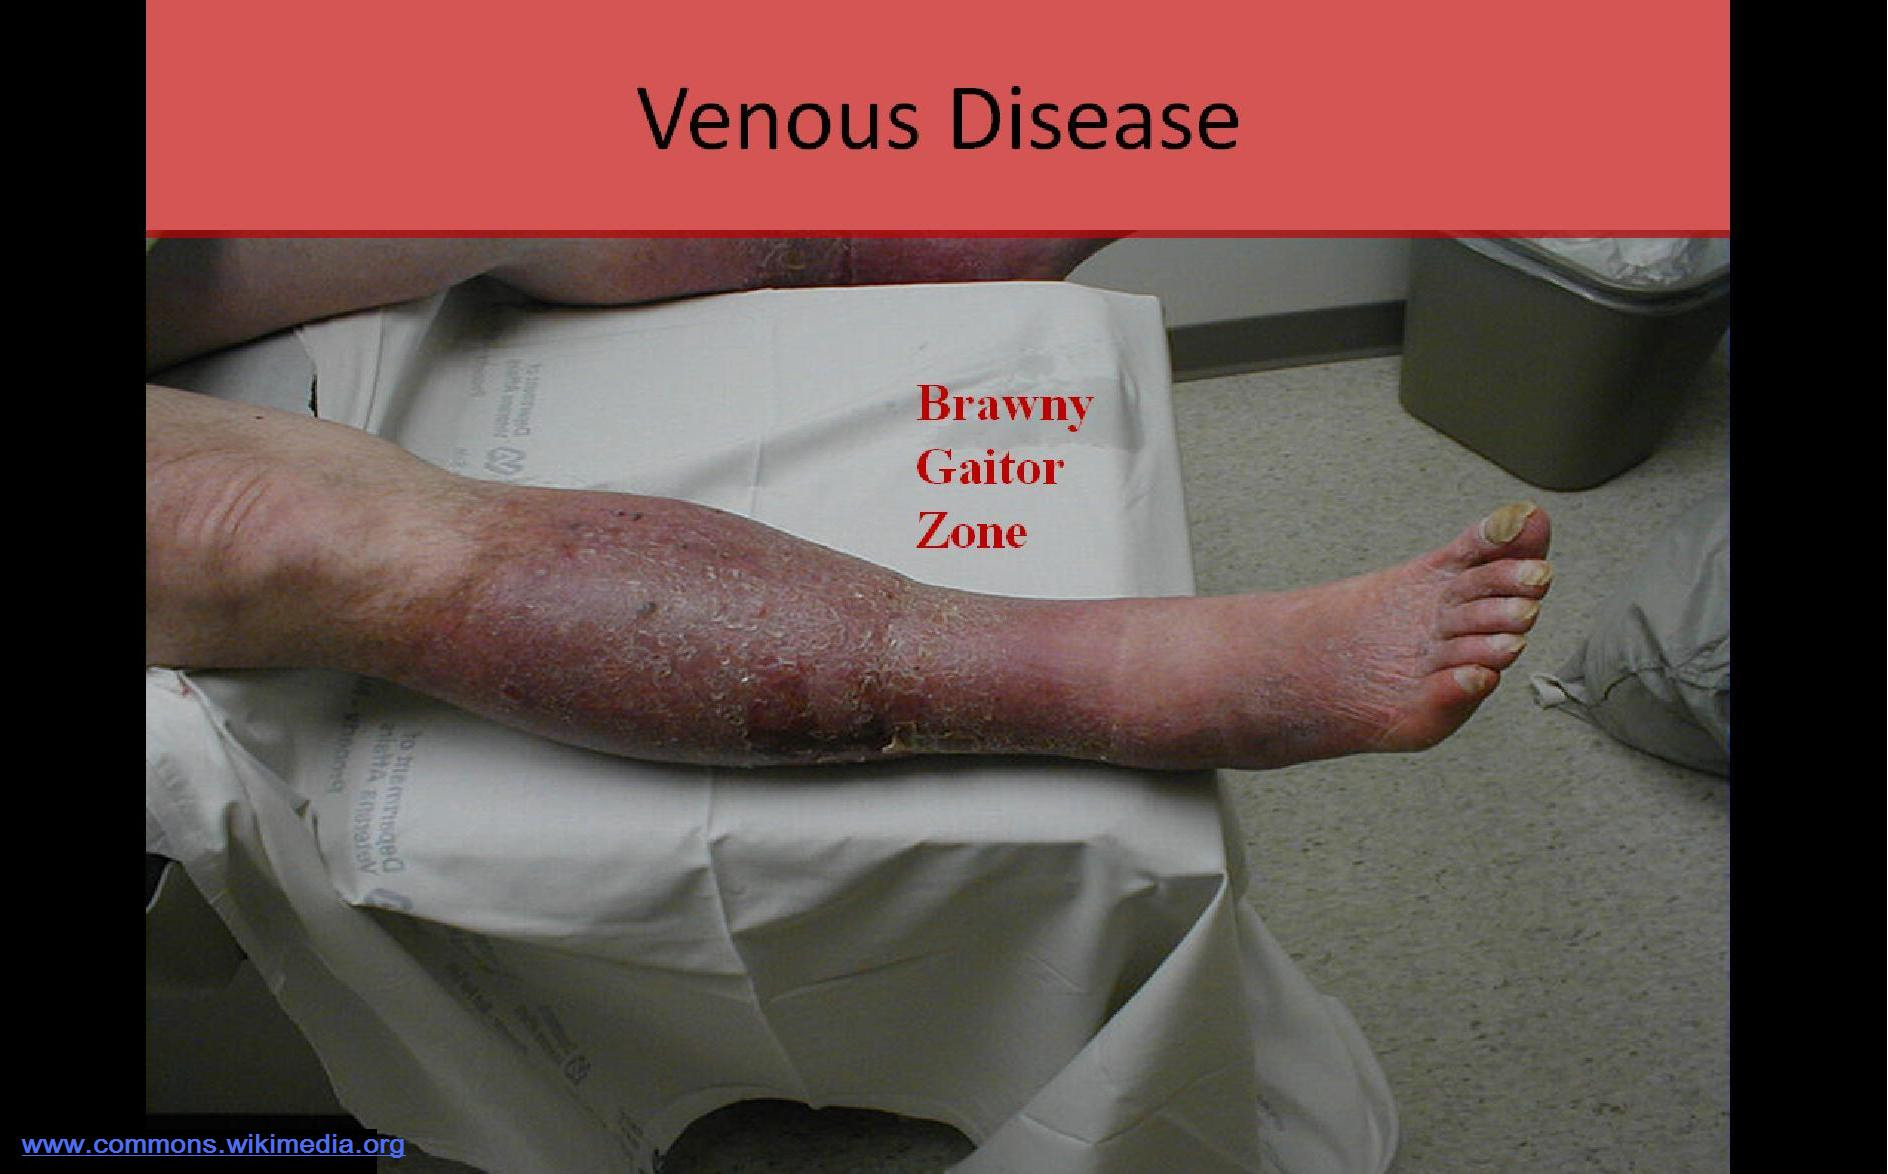 Ultrasound Registry Review - Extremity Venous